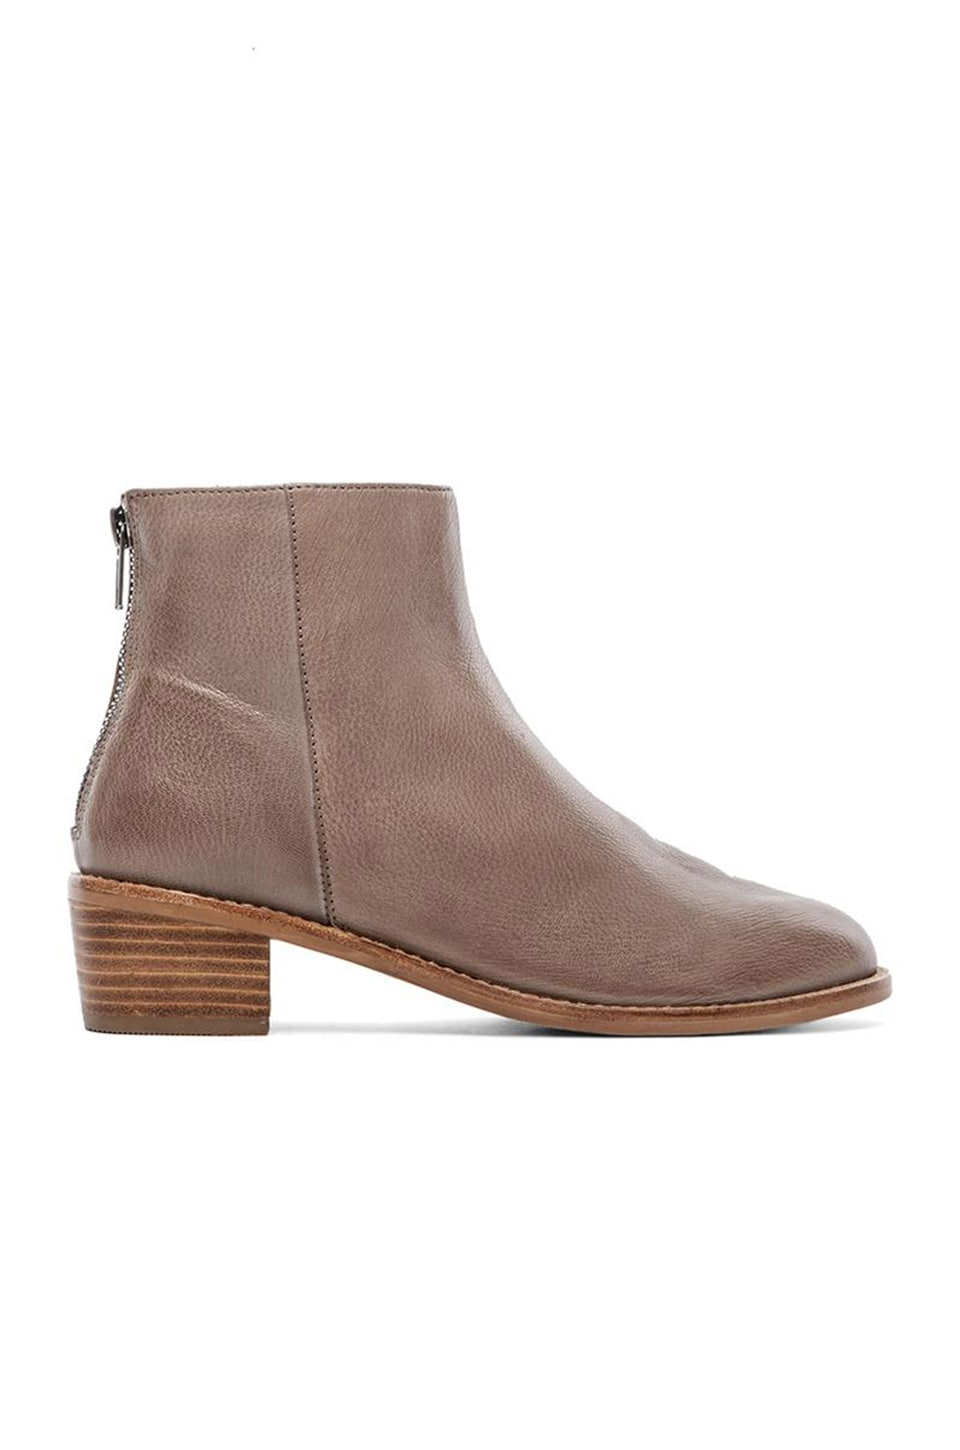 Dolce Vita Caiden Bootie in Light Grey